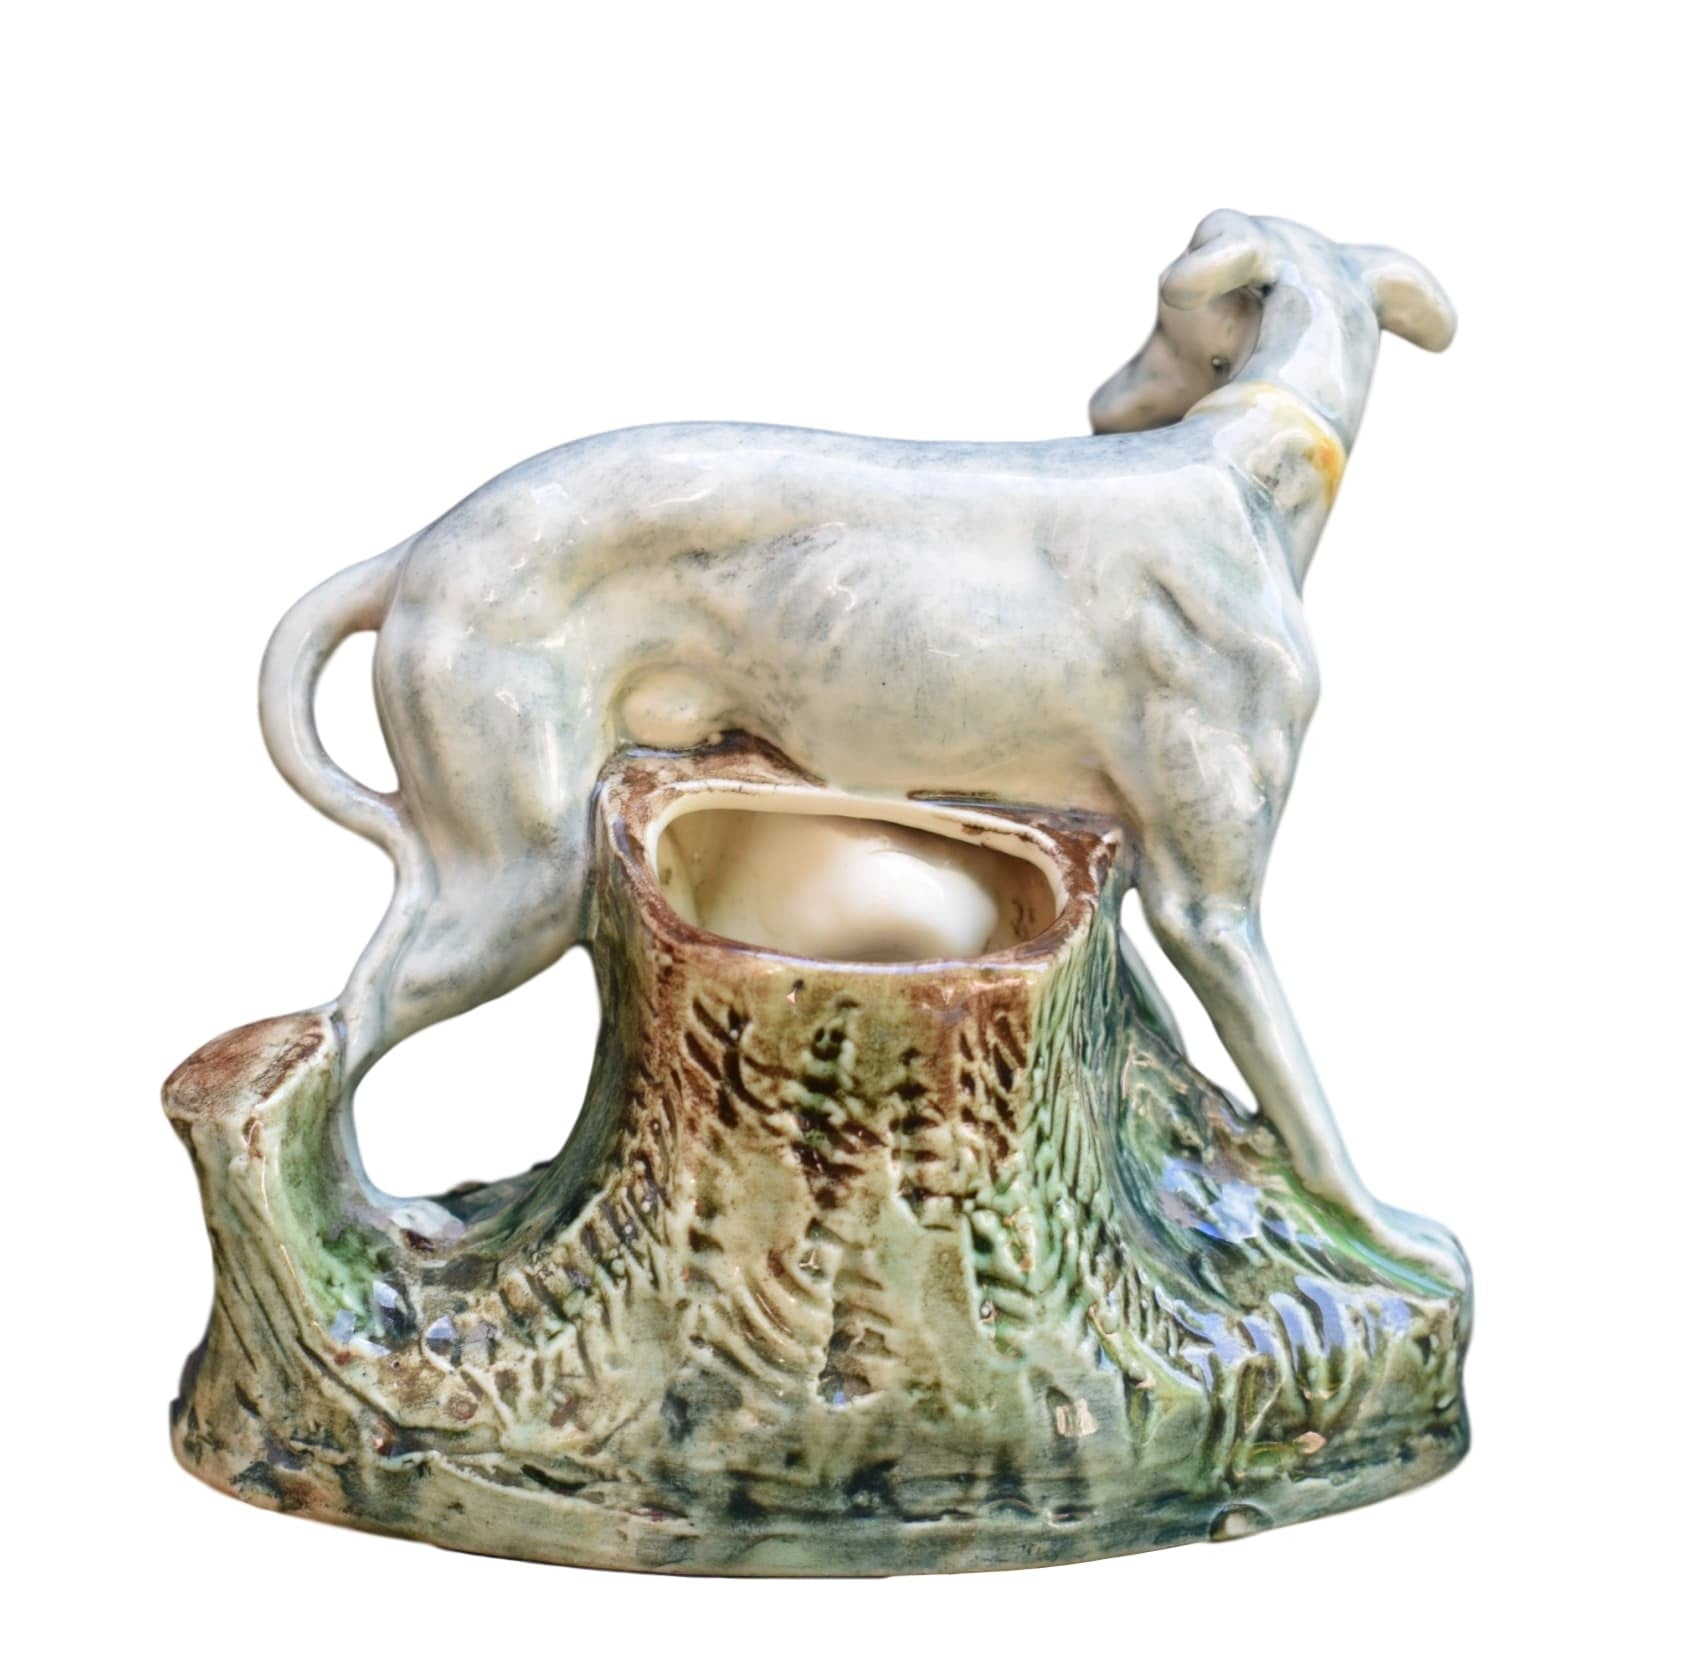 Porcelain Greyhound - Charmantiques